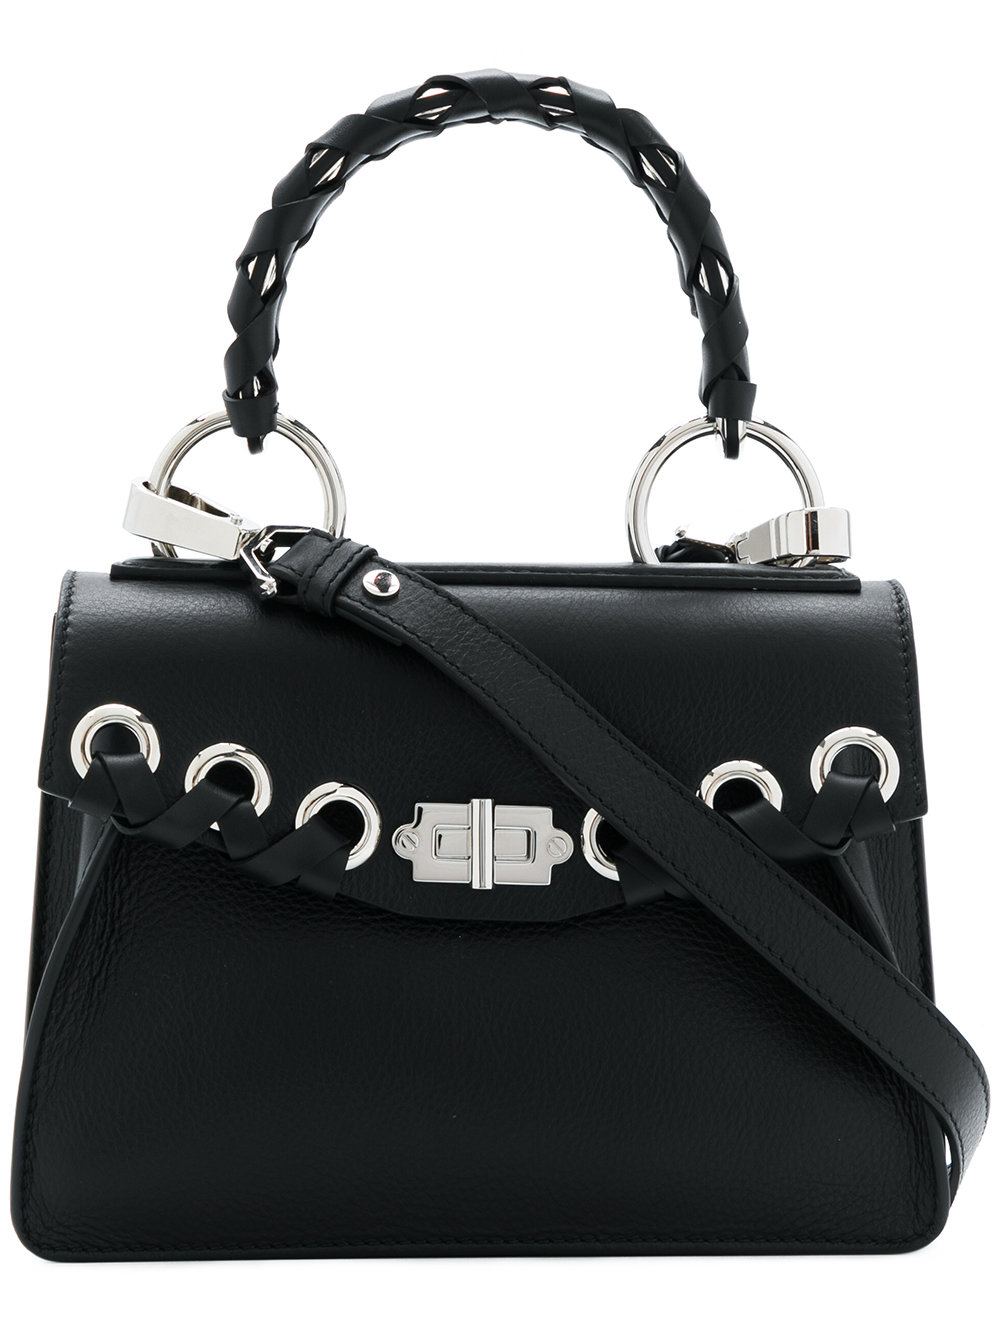 97409f08d Proenza Schouler - Black Women's Small Hava Whipstitch Top Handle Bag,  vendor code: 412449 ...